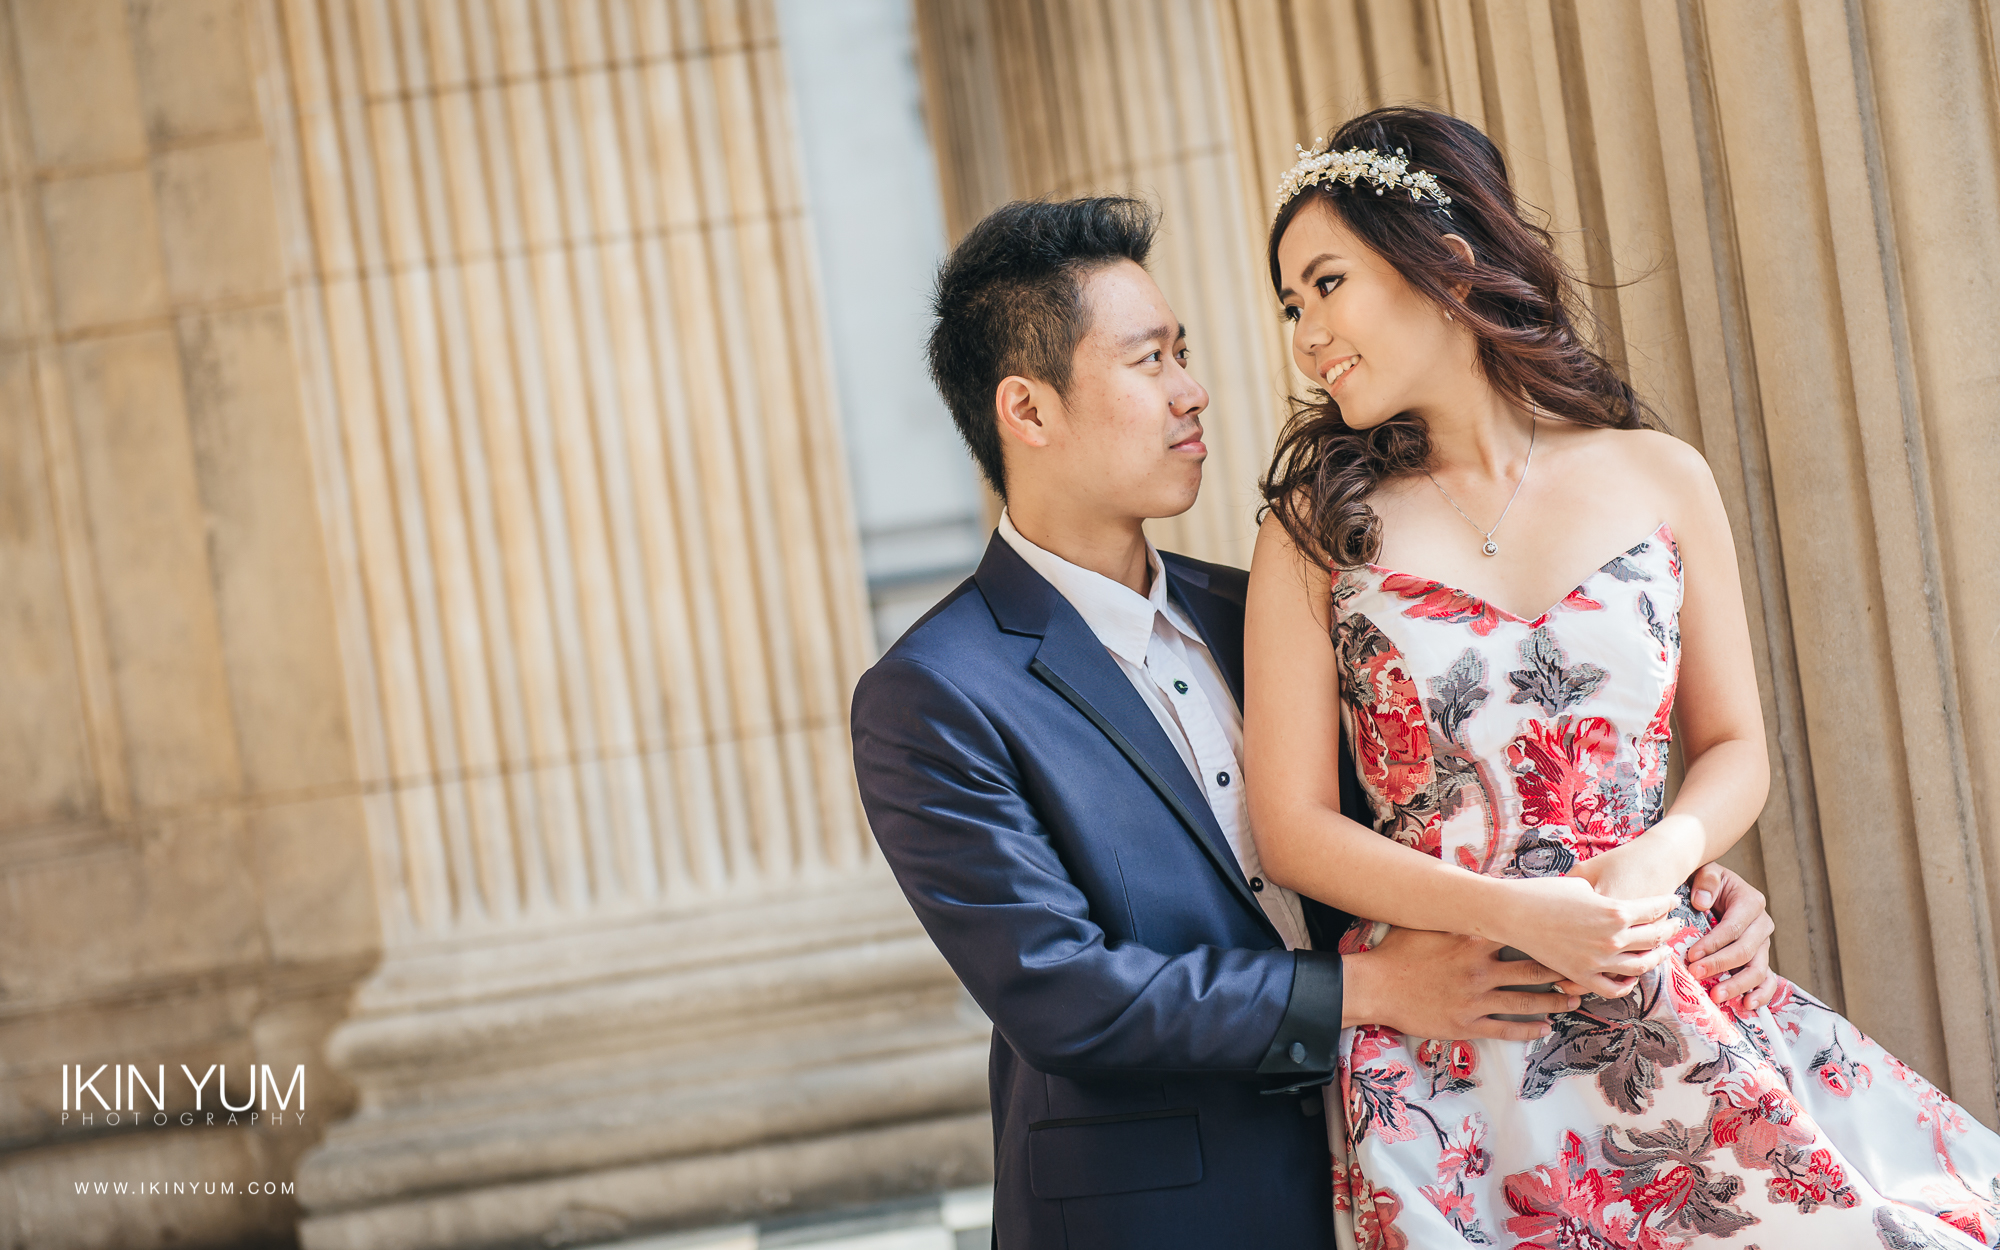 Pre-Wedding Shoot London Susan + Alvin - Ikin Yum Photography-006.jpg